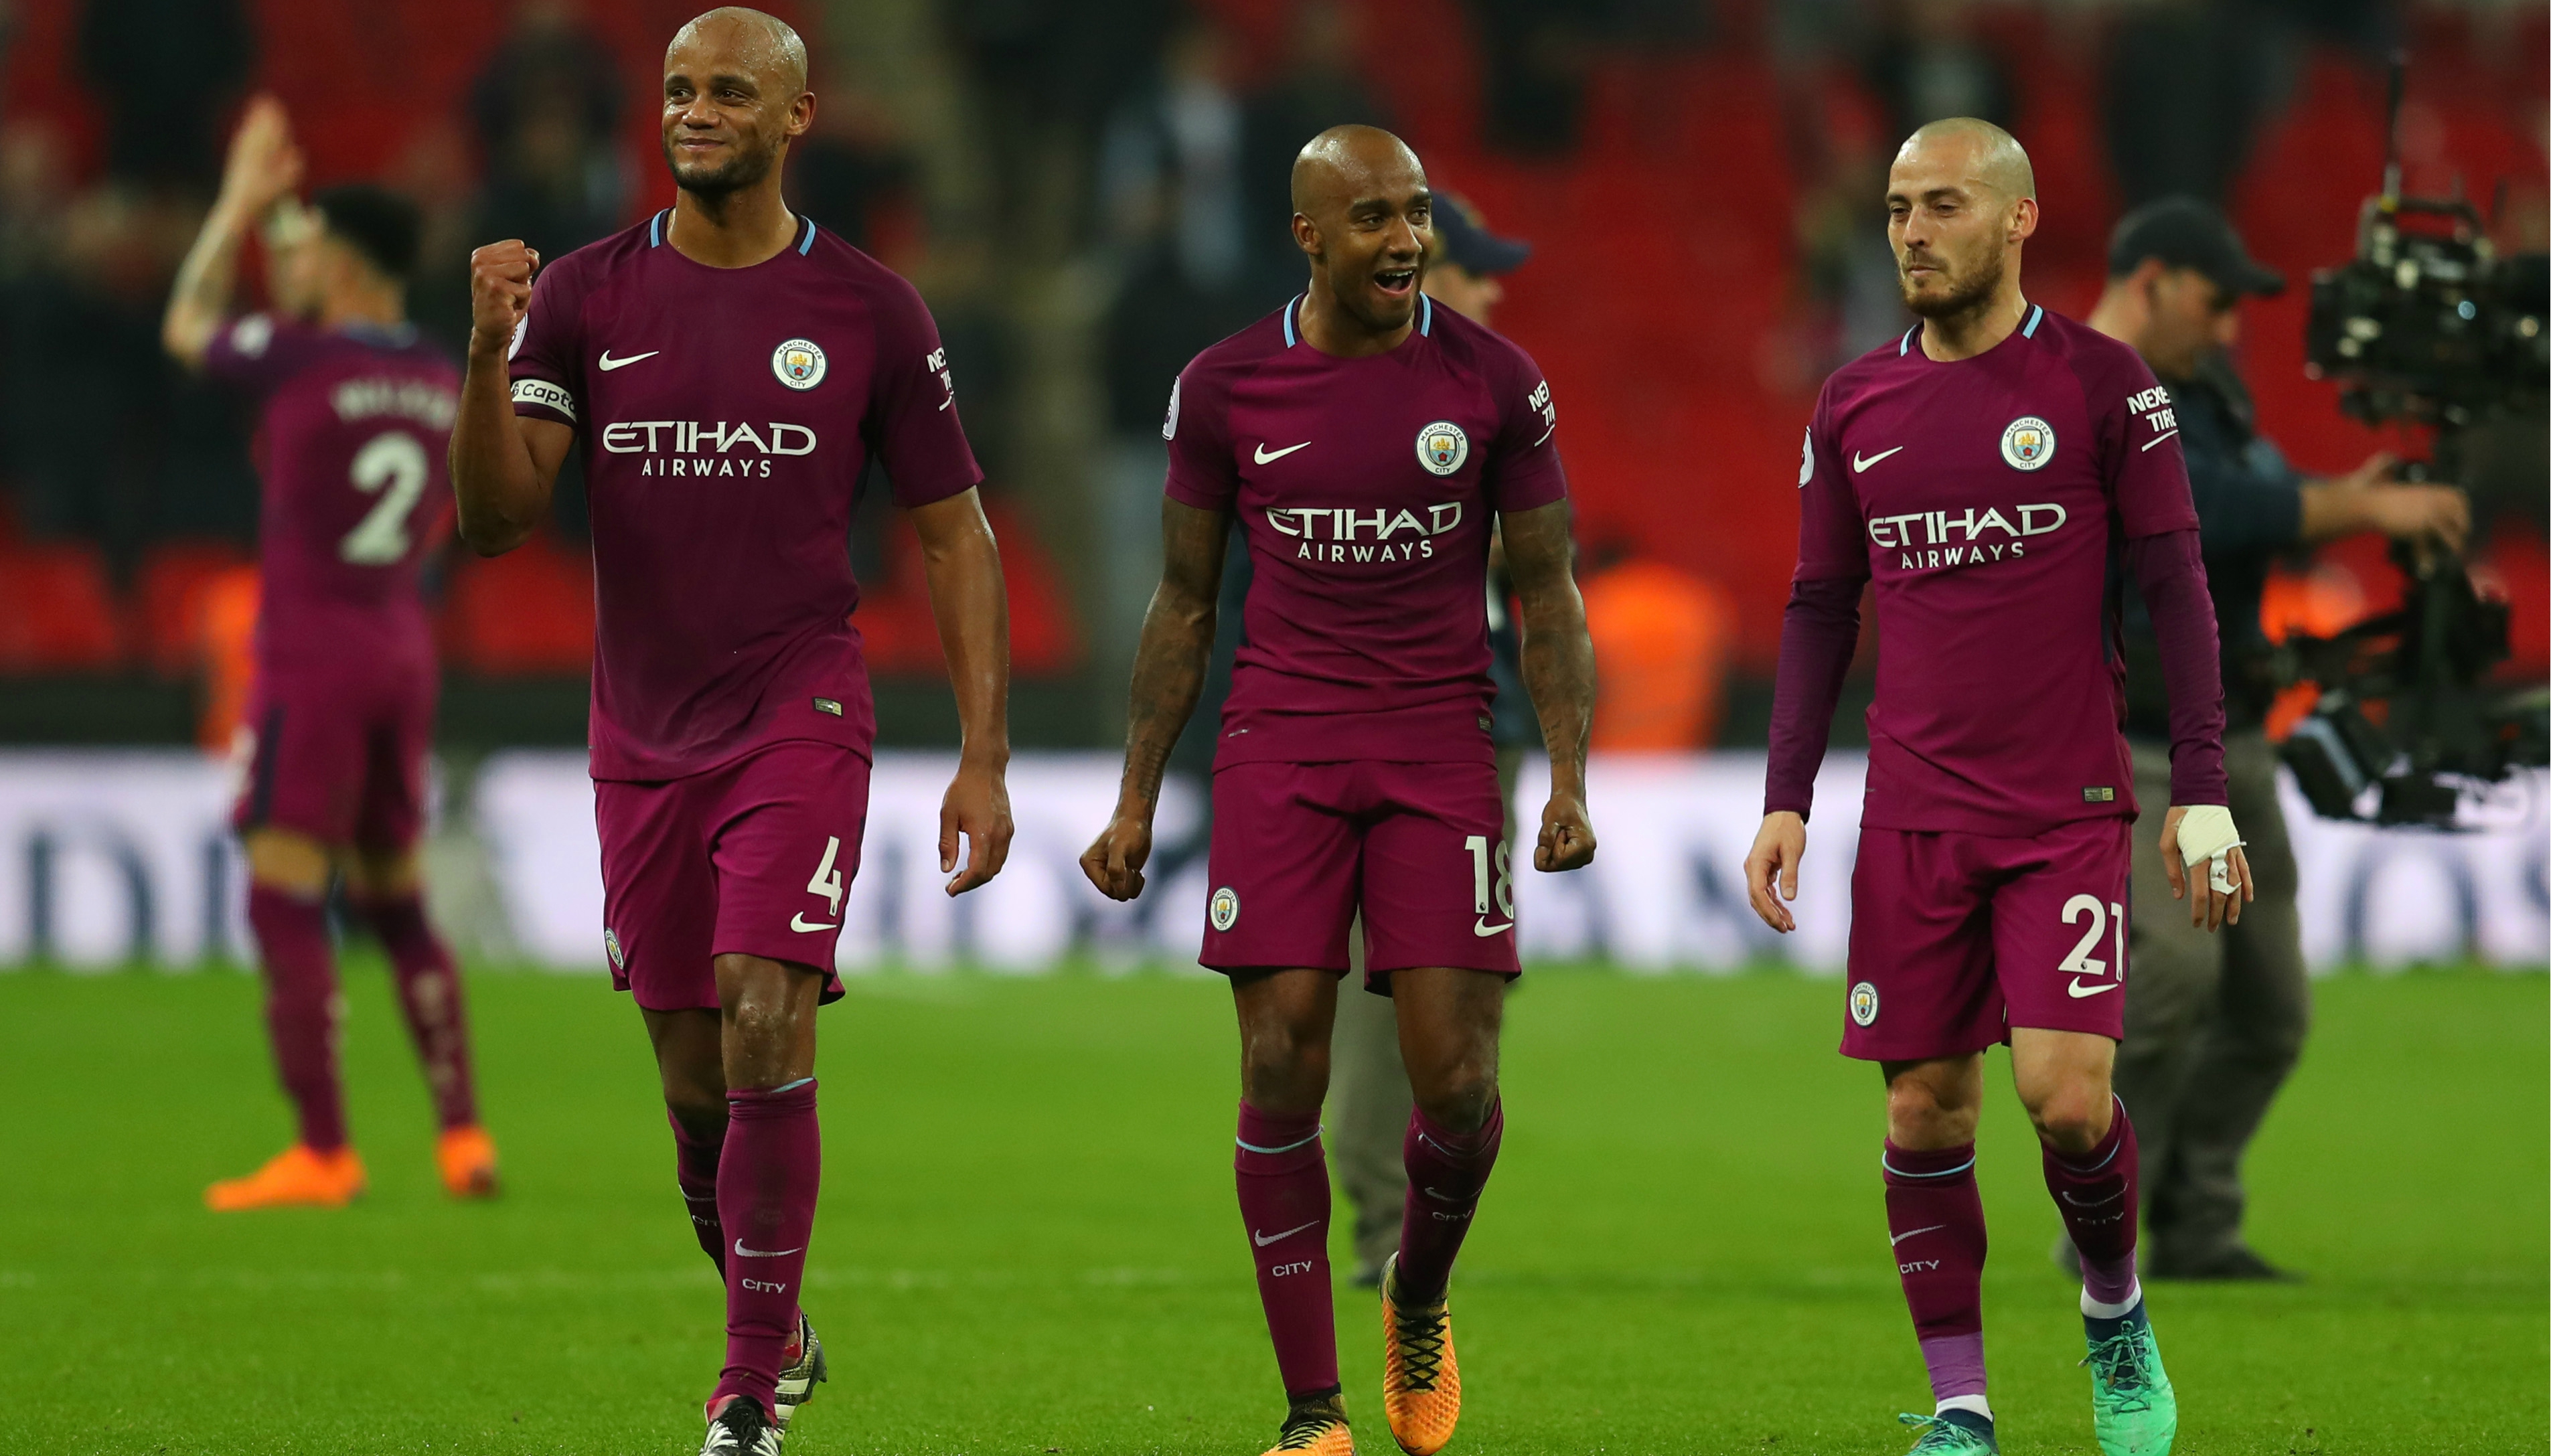 African stars play pivotal role in Man City title win